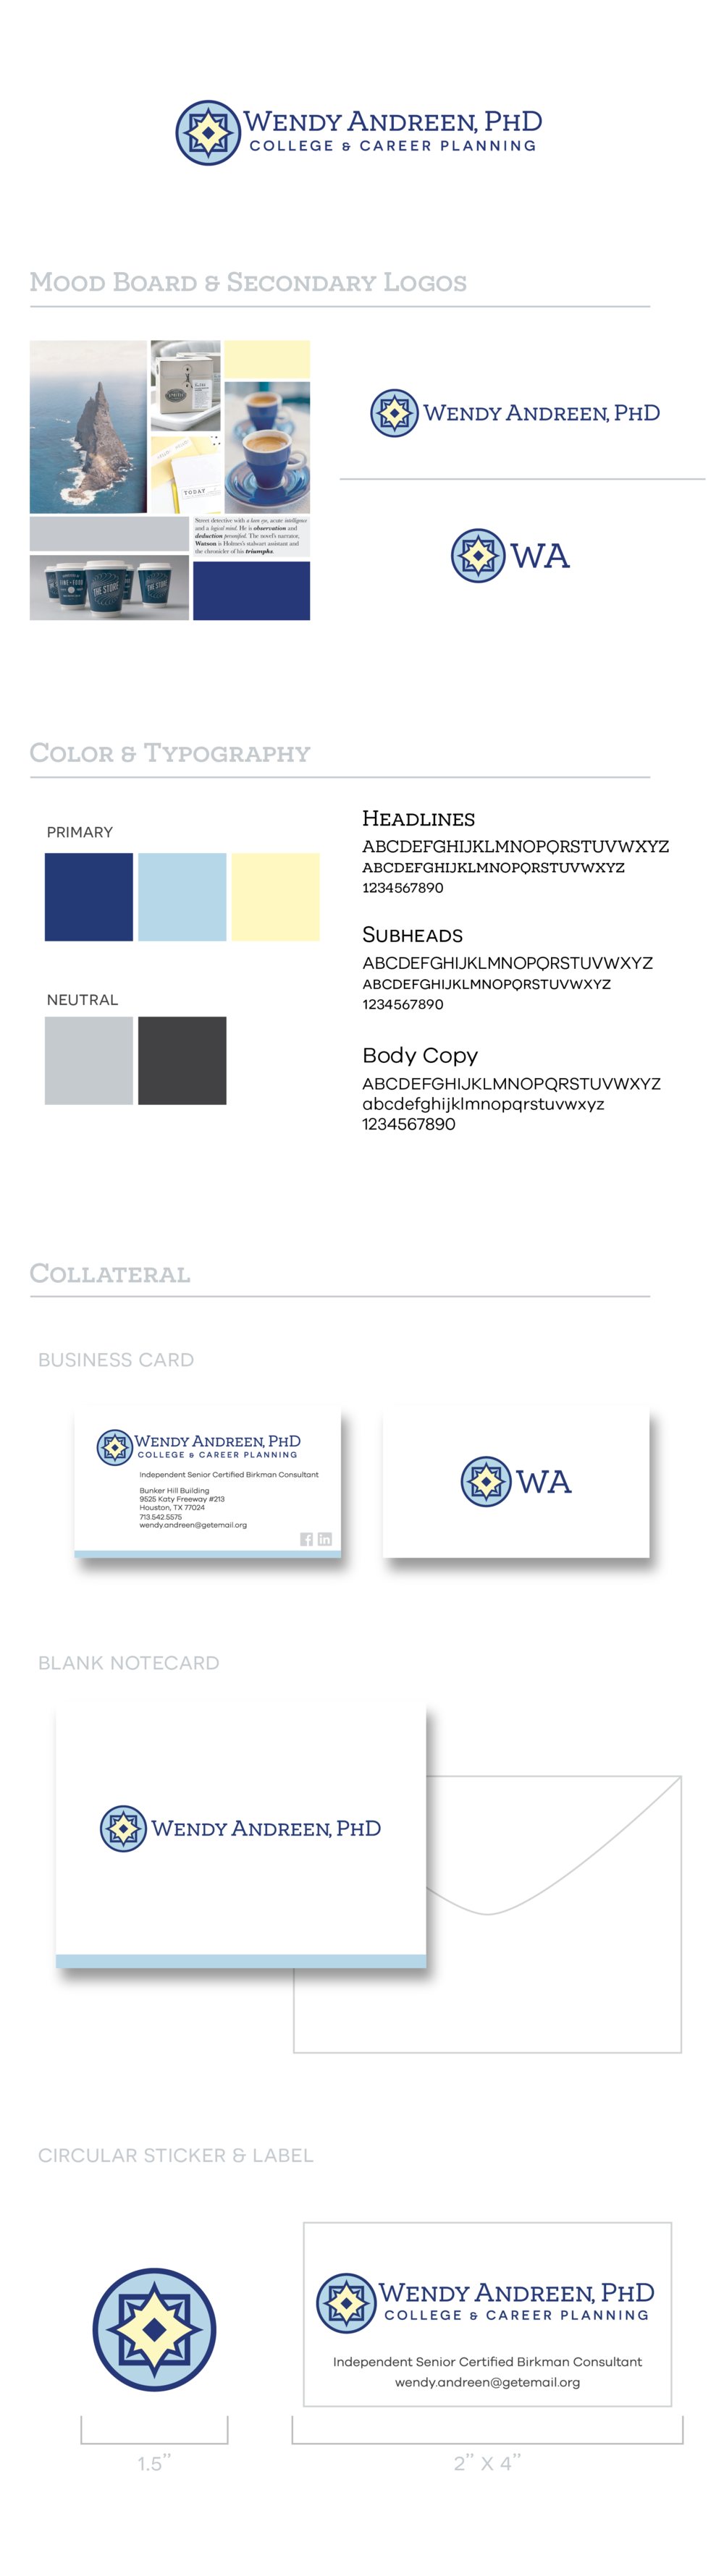 Wendy Andreen logo, mood board, colors, typography, business card and stationary by Anna Andreen